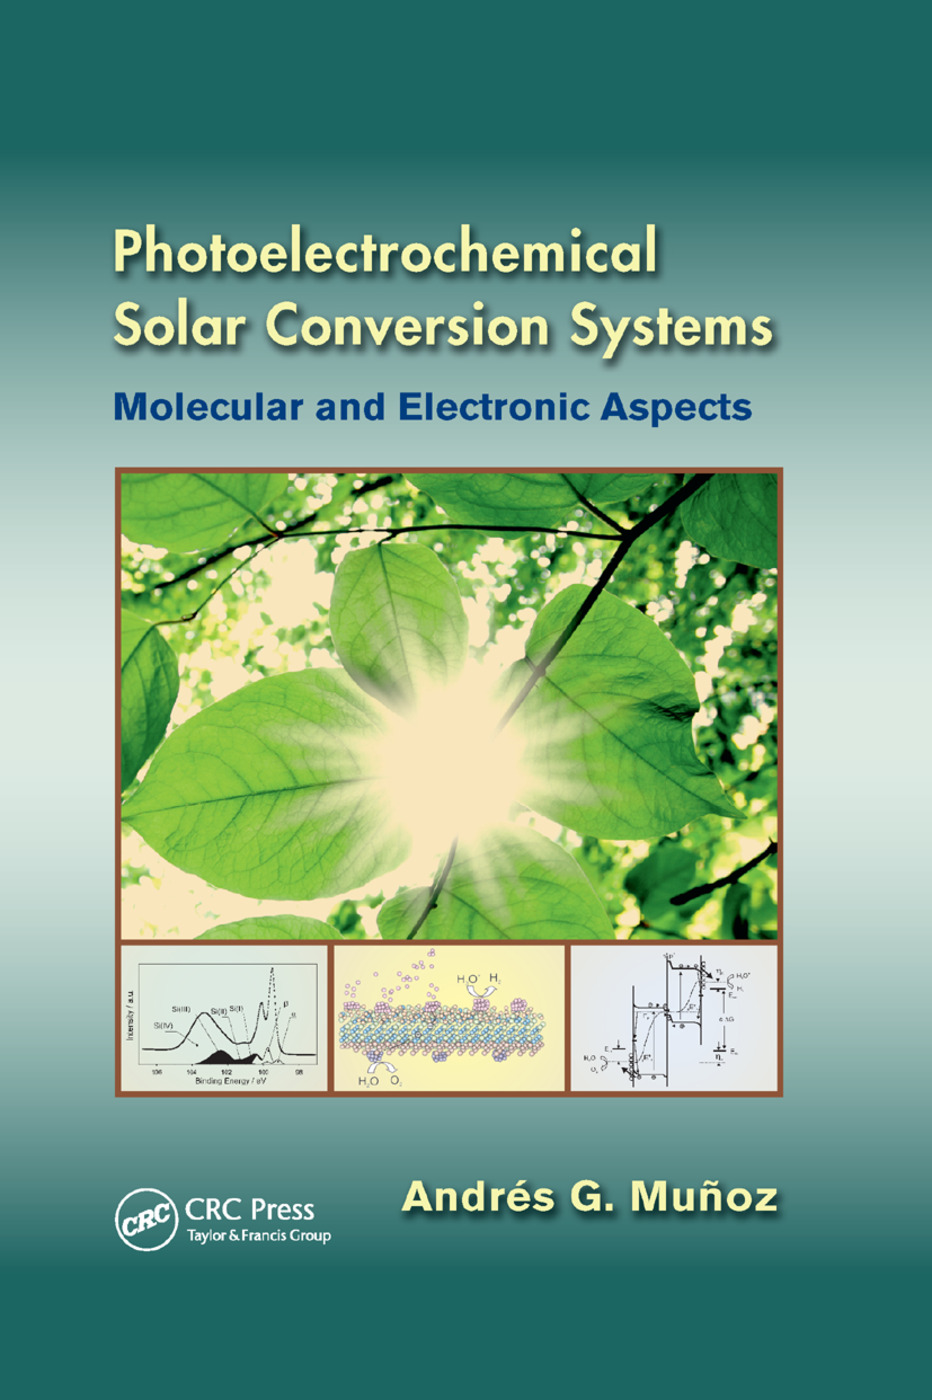 Photoelectrochemical Solar Conversion Systems: Molecular and Electronic Aspects book cover